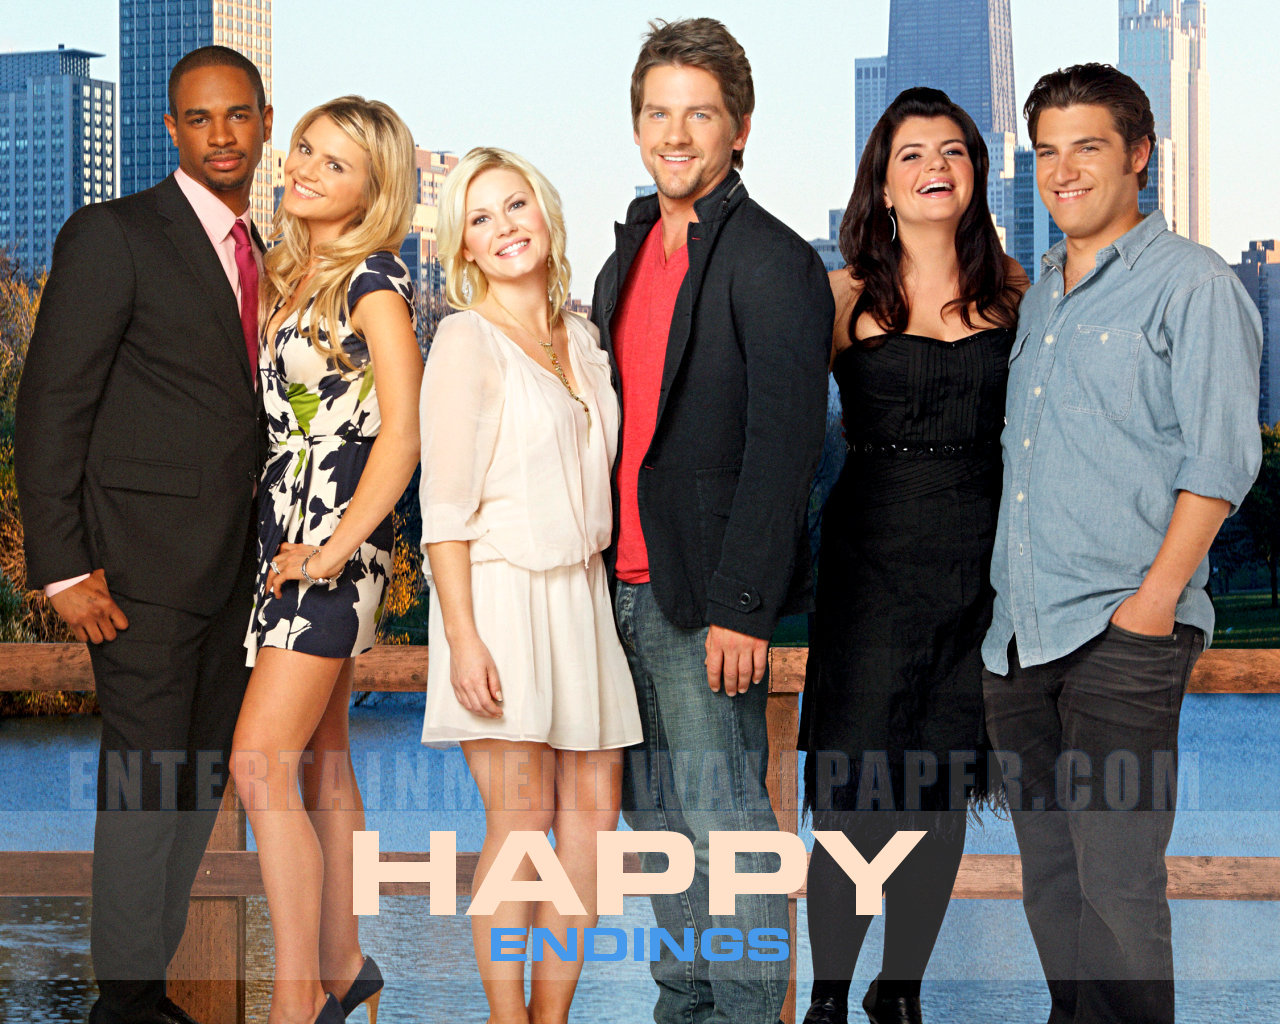 Whats on Your TV: April 2011